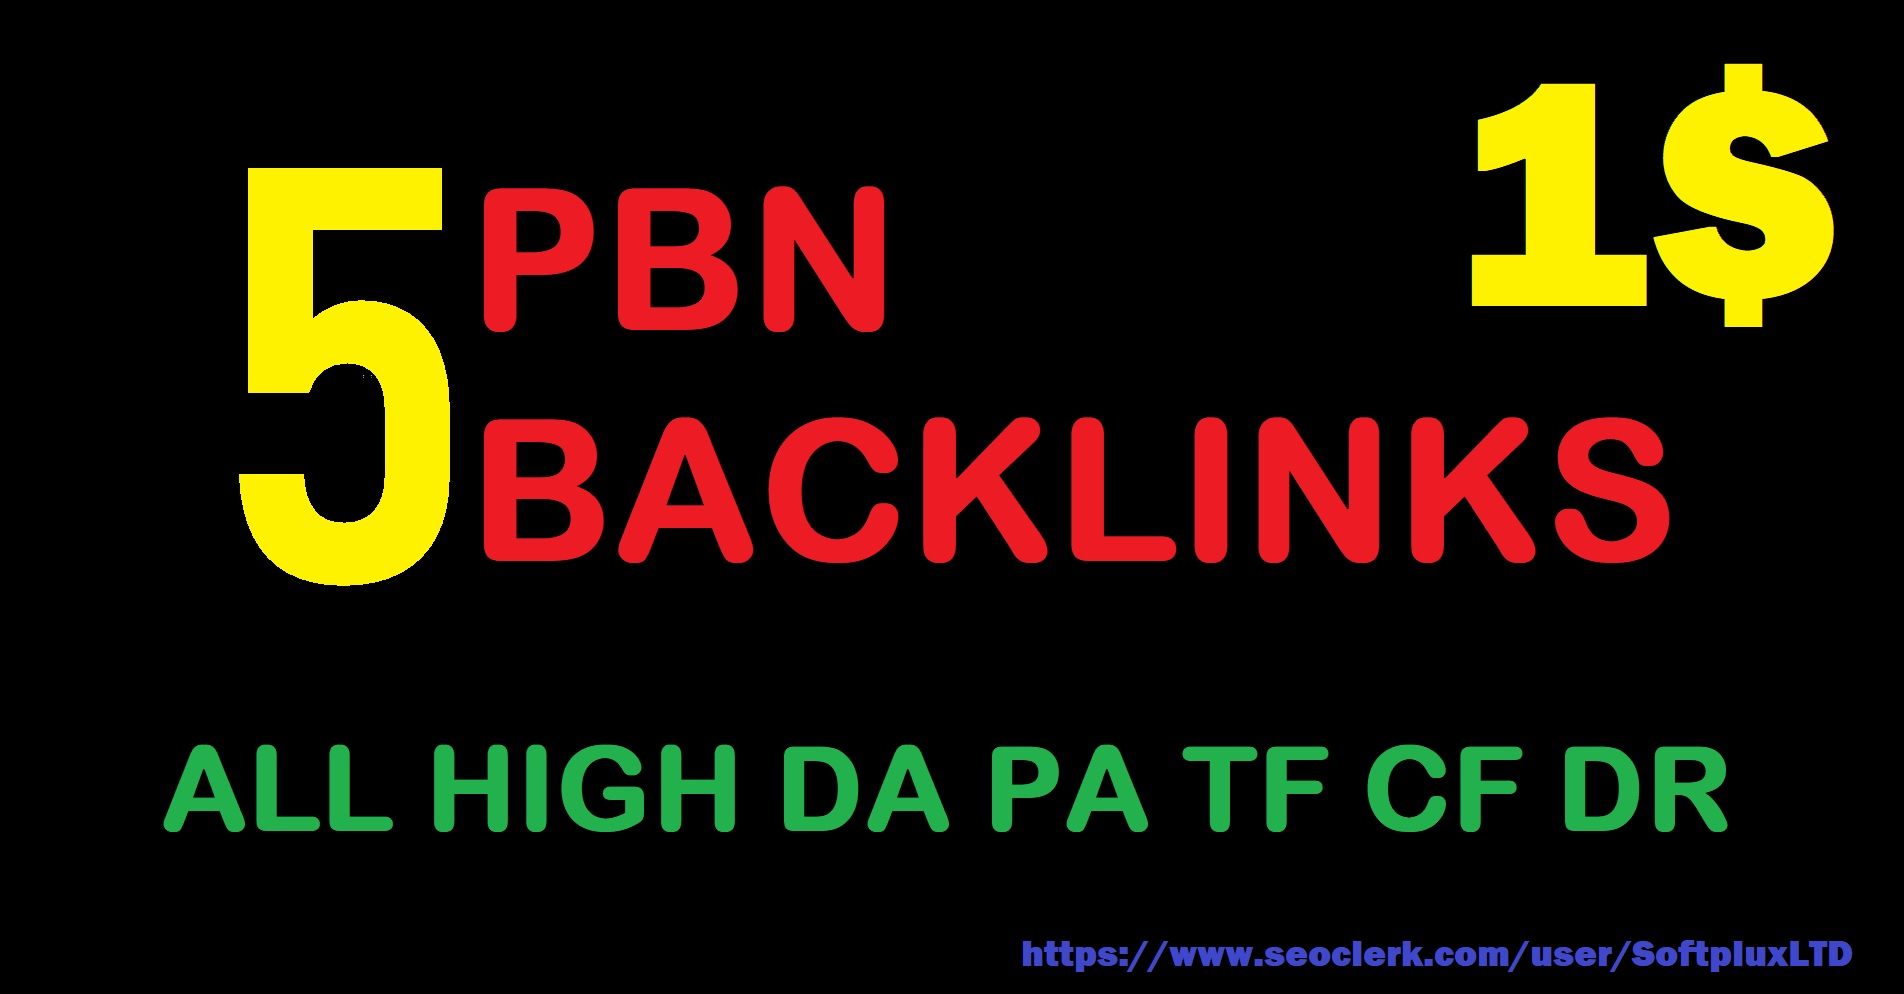 Make 5 High Quality PBN Backlinks With High DA PA TC CF